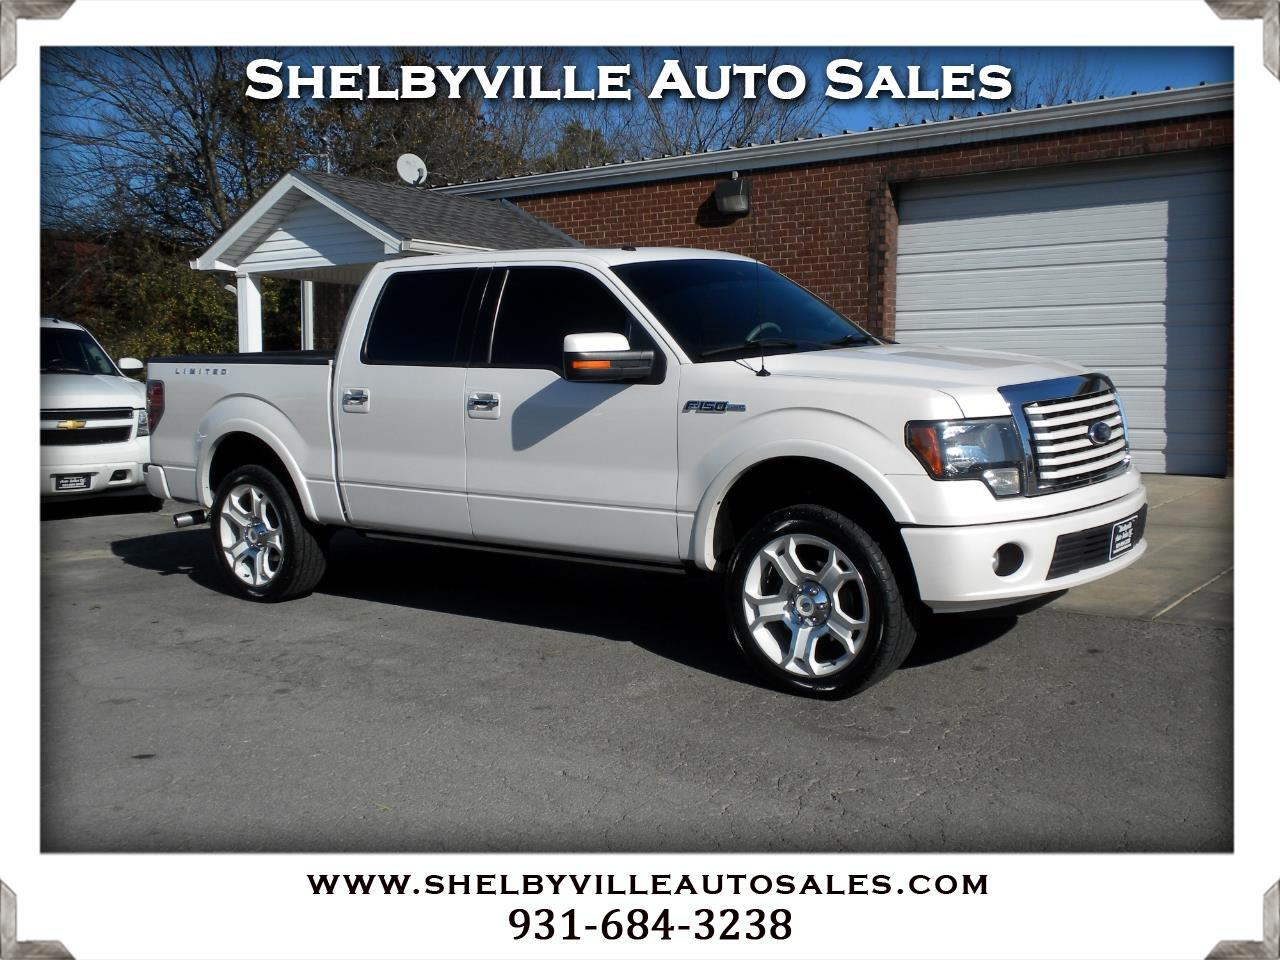 2011 Ford F-150 4X4 Crew Cab Lariat Limited